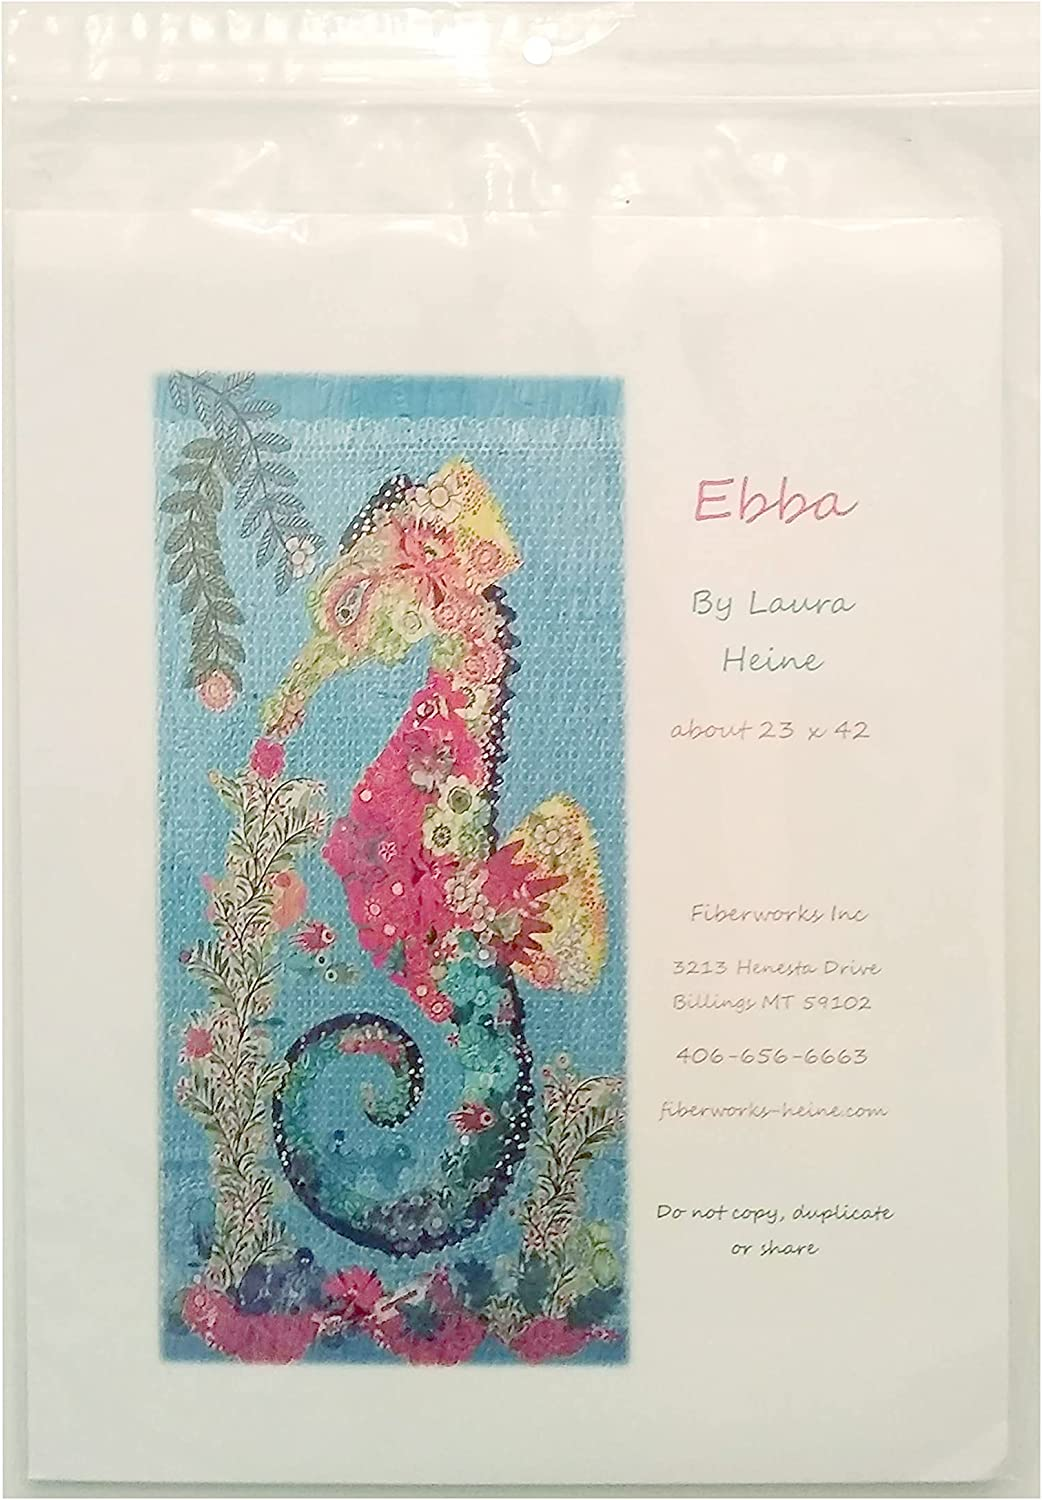 Fiberworks Laura Heine Collage Style Raleigh Mall Quilting The - Pattern Weekly update Ebba